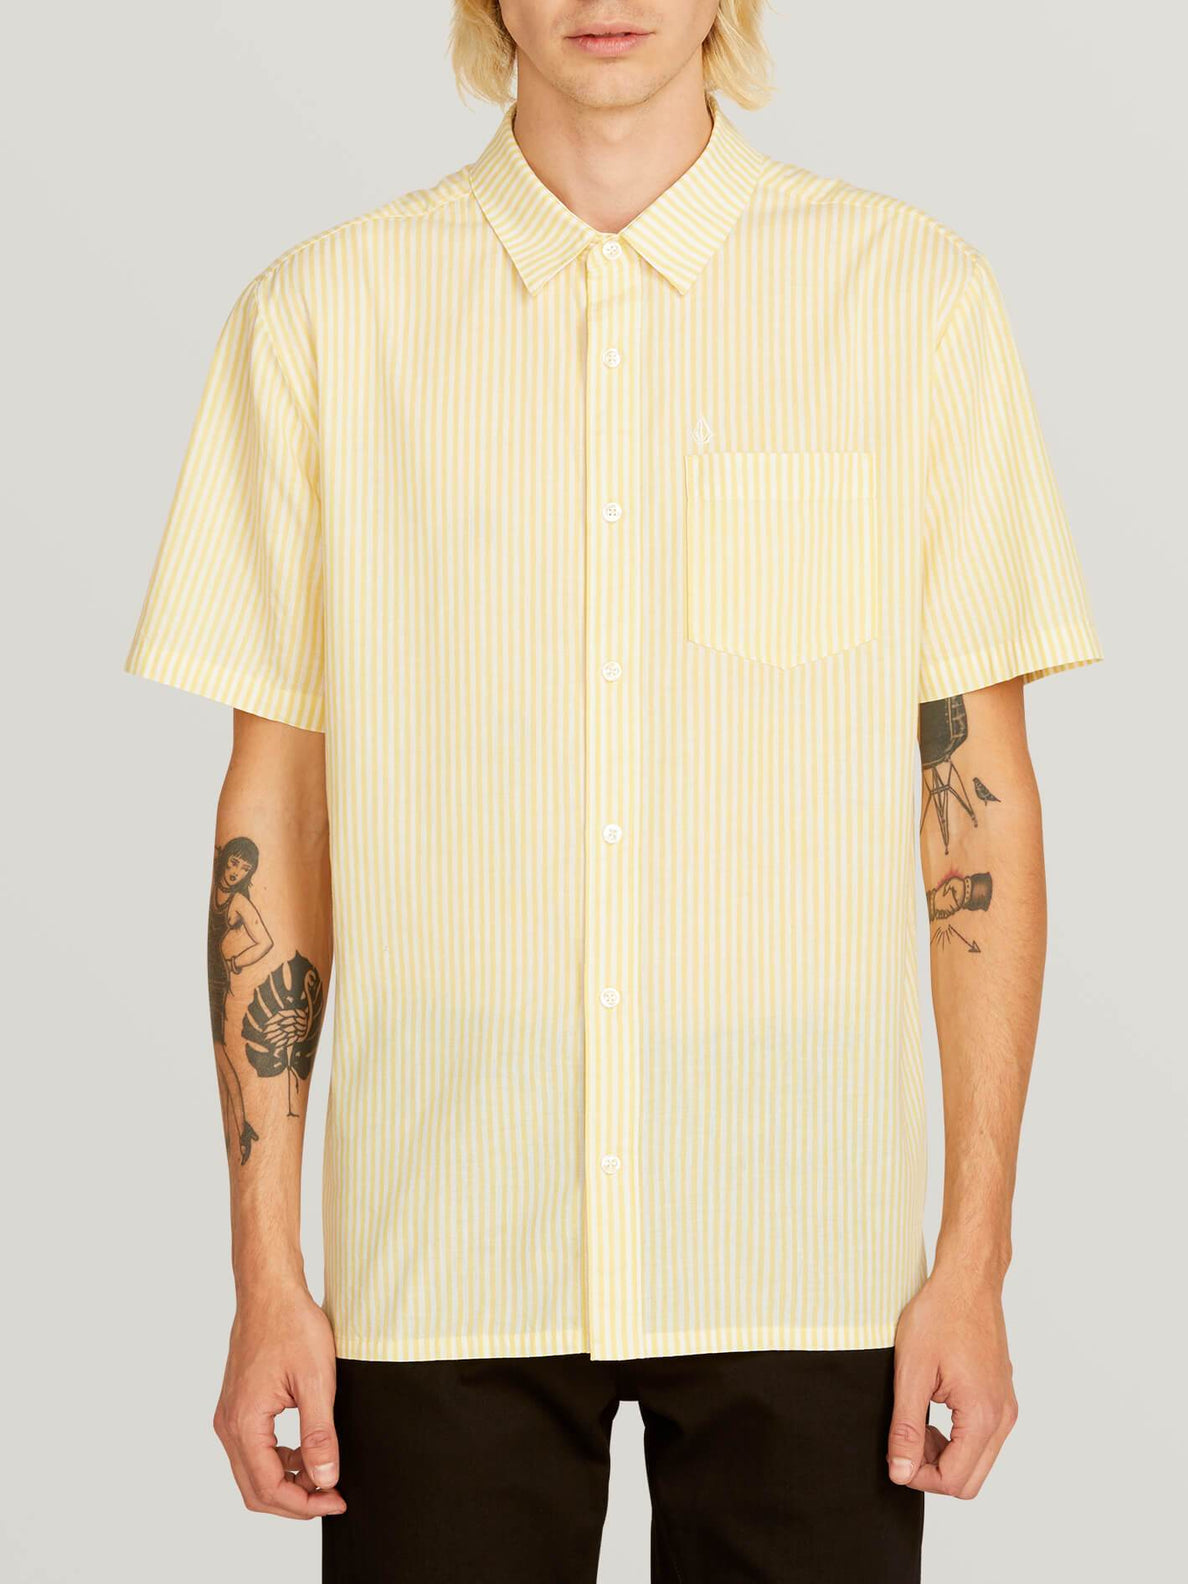 Kramer Short Sleeve Shirt In Lime, Front View